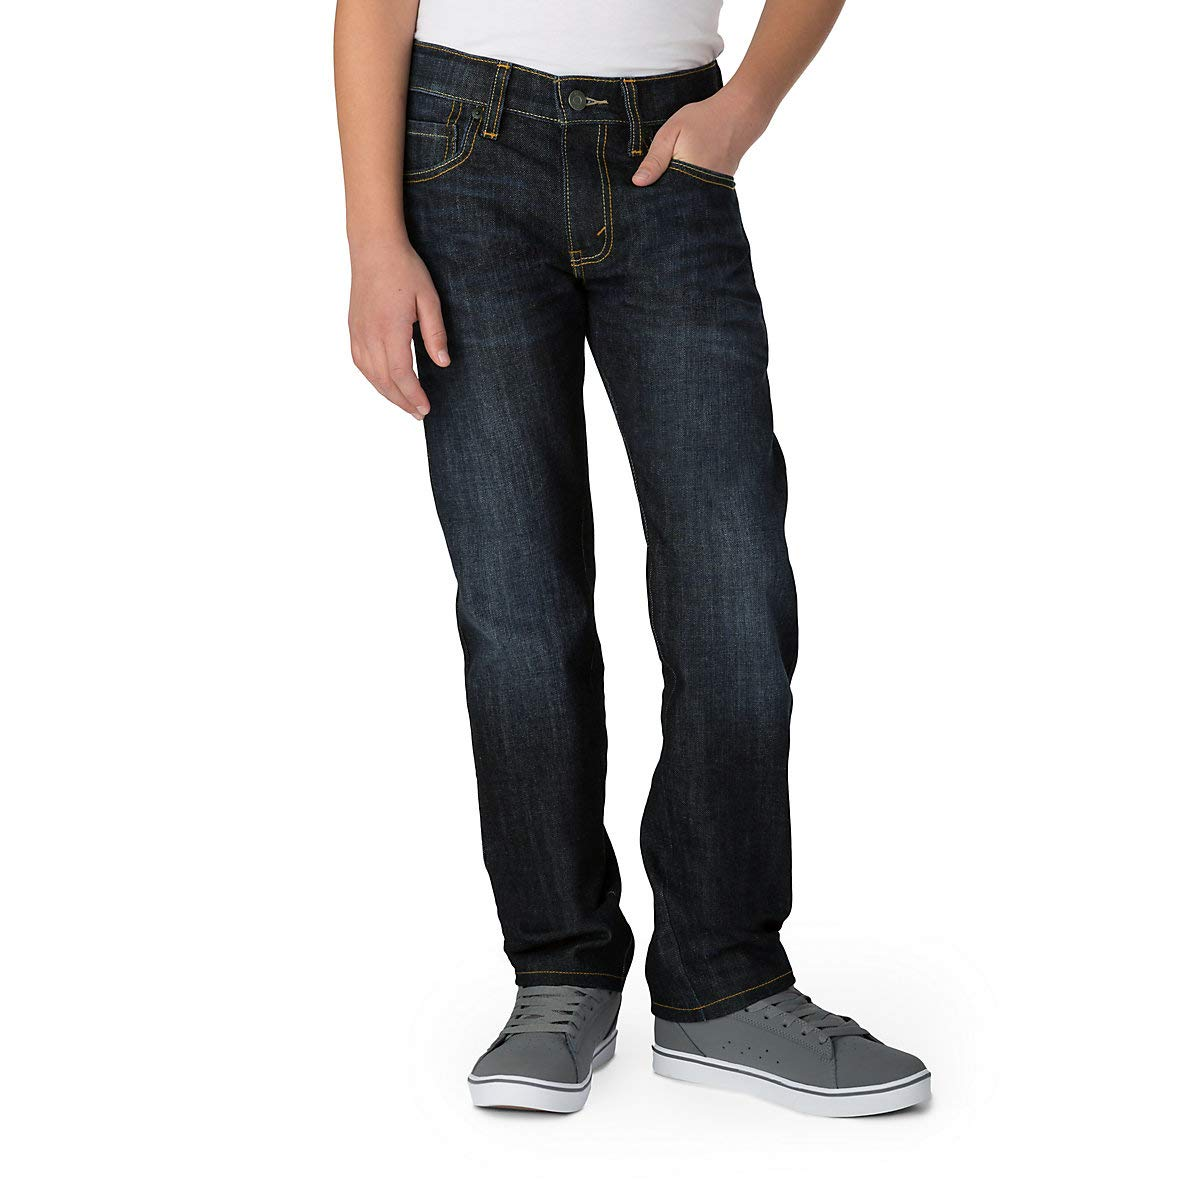 Signature by Levi Strauss & Co. Gold Label Big Boys' Slim Straight Fit Jeans, Bowie, 18 by Signature by Levi Strauss & Co. Gold Label